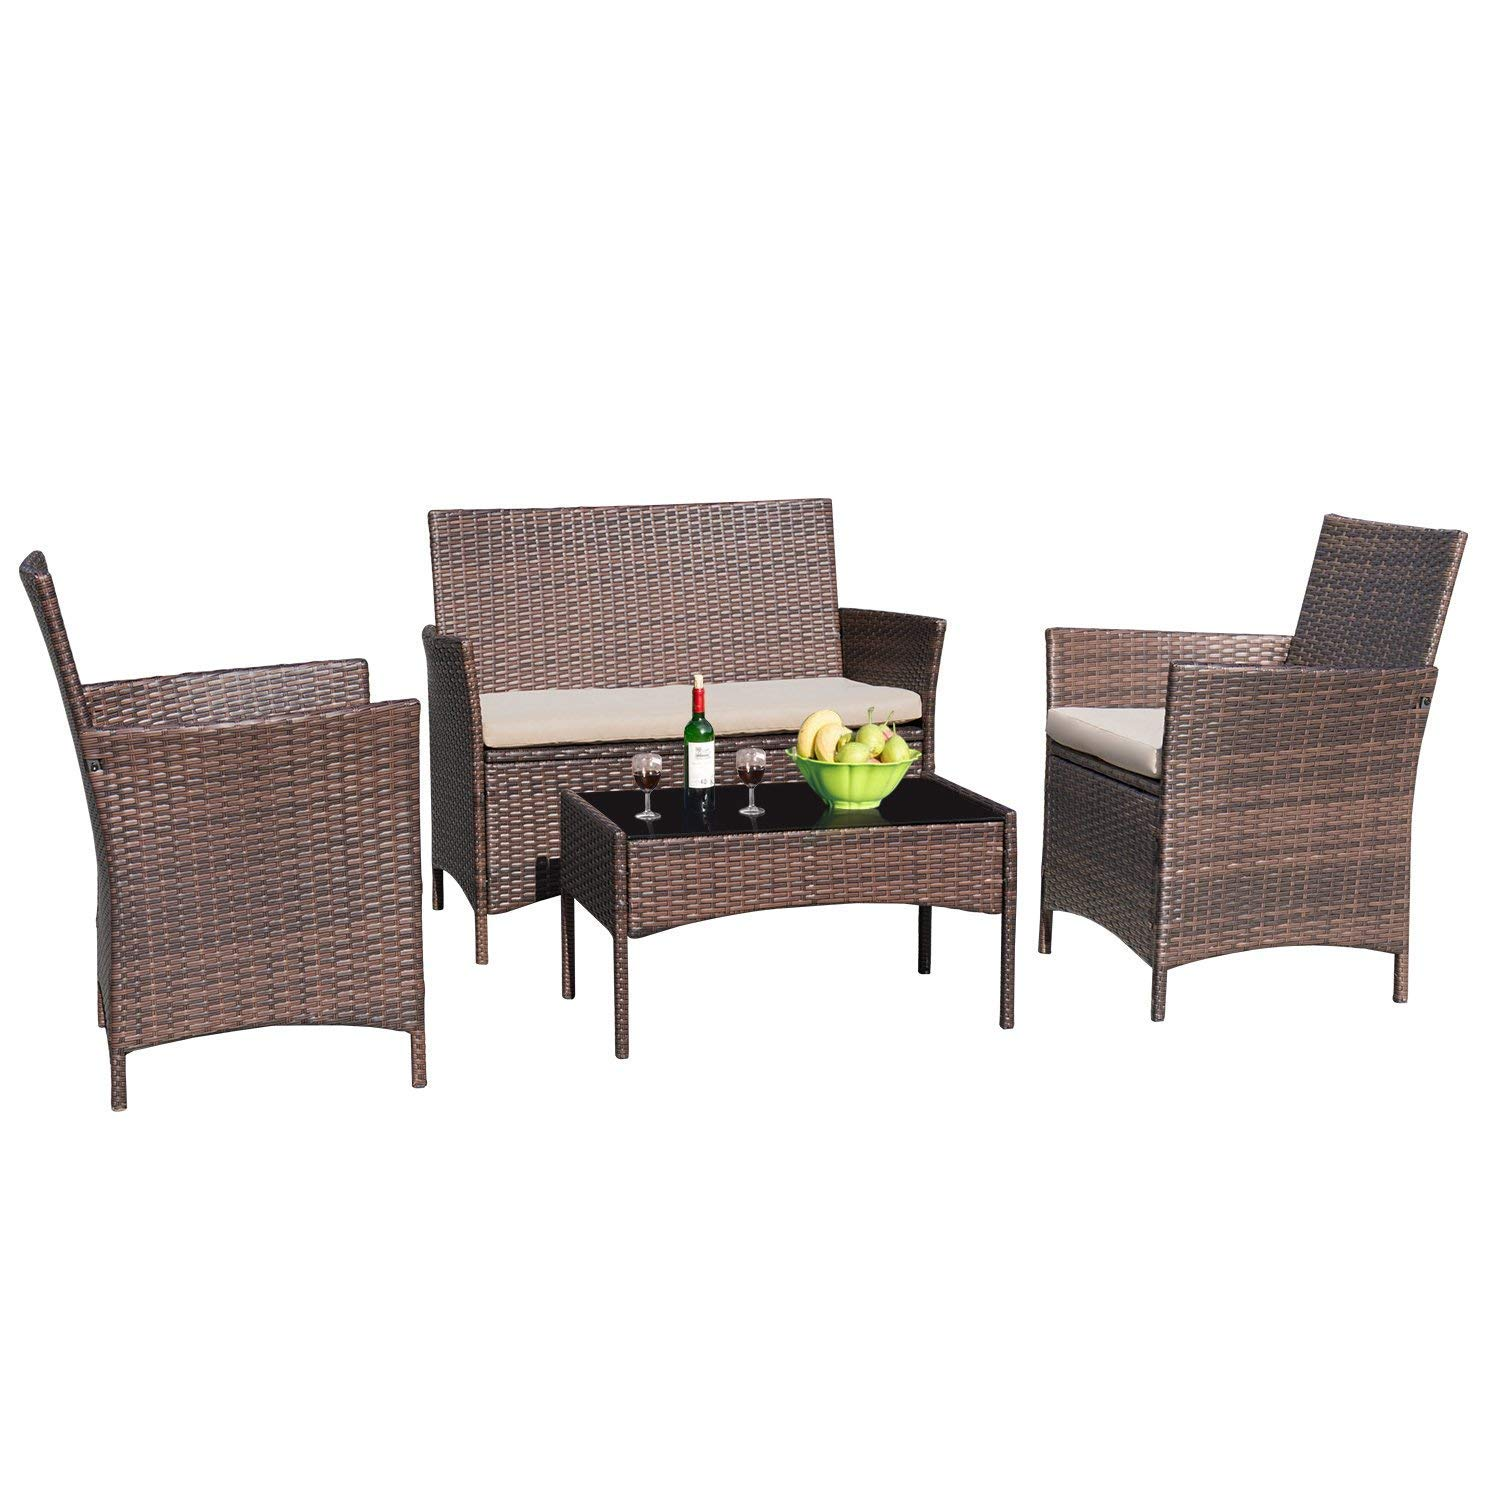 Greesum 4 Pieces Patio Furniture Sets, Rattan Wicker Chair, Outdoor Conversation Sets for Garden Balcony Porch Poolside wi...